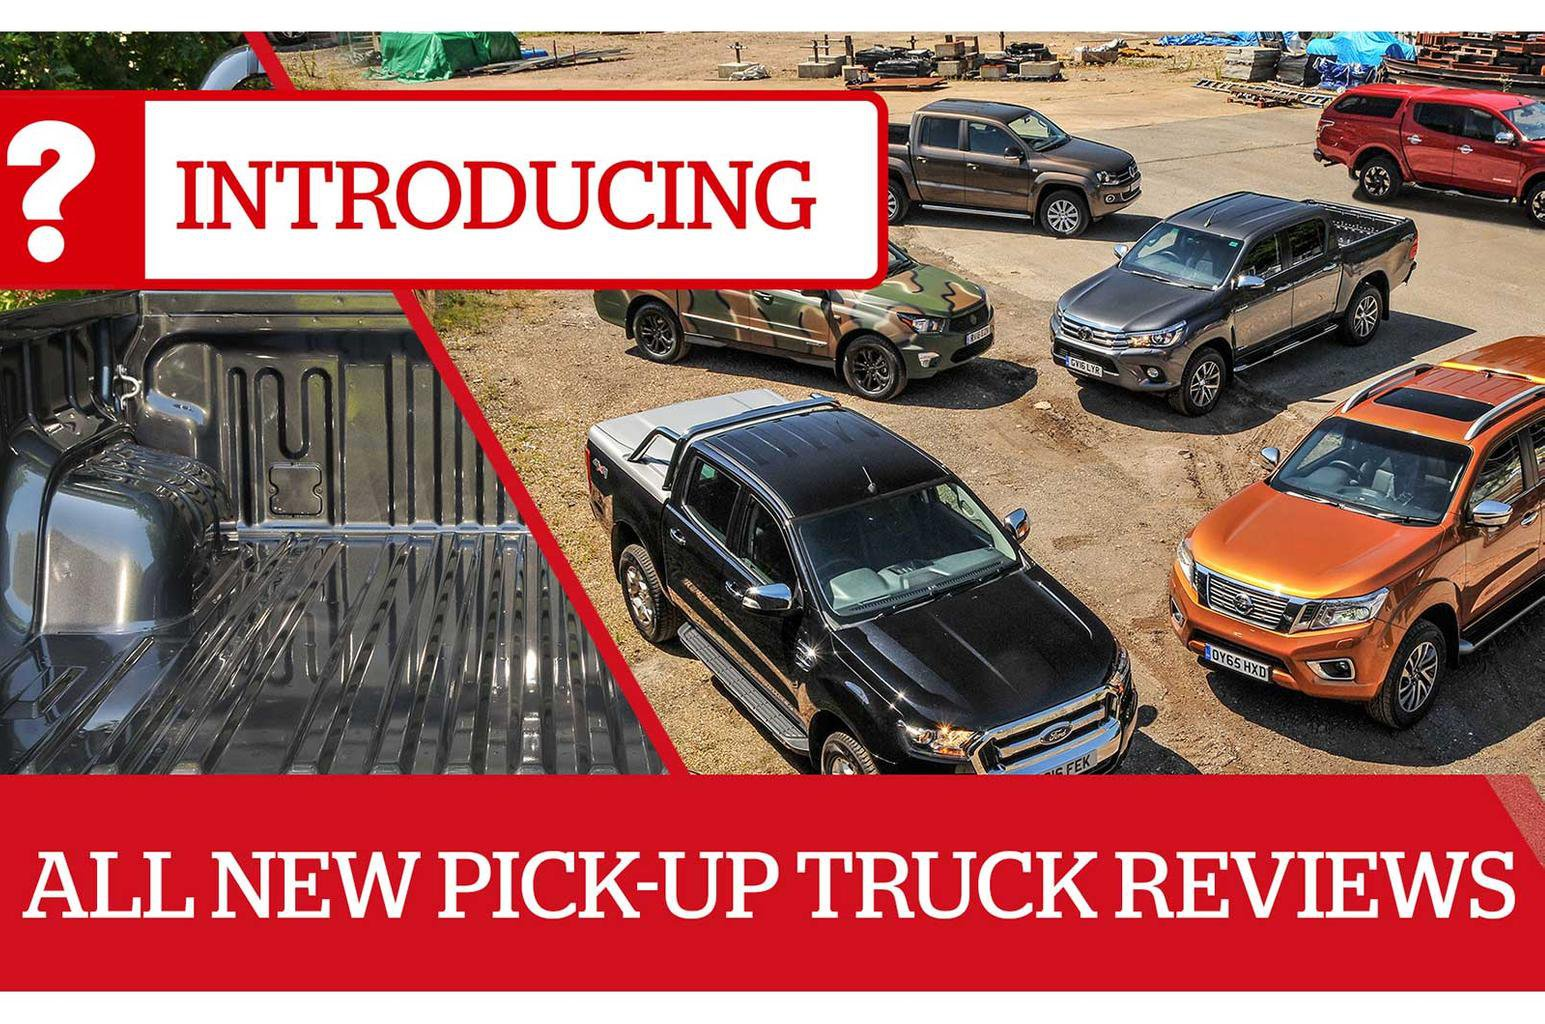 Video: New pick-up truck reviews coming to What Car?